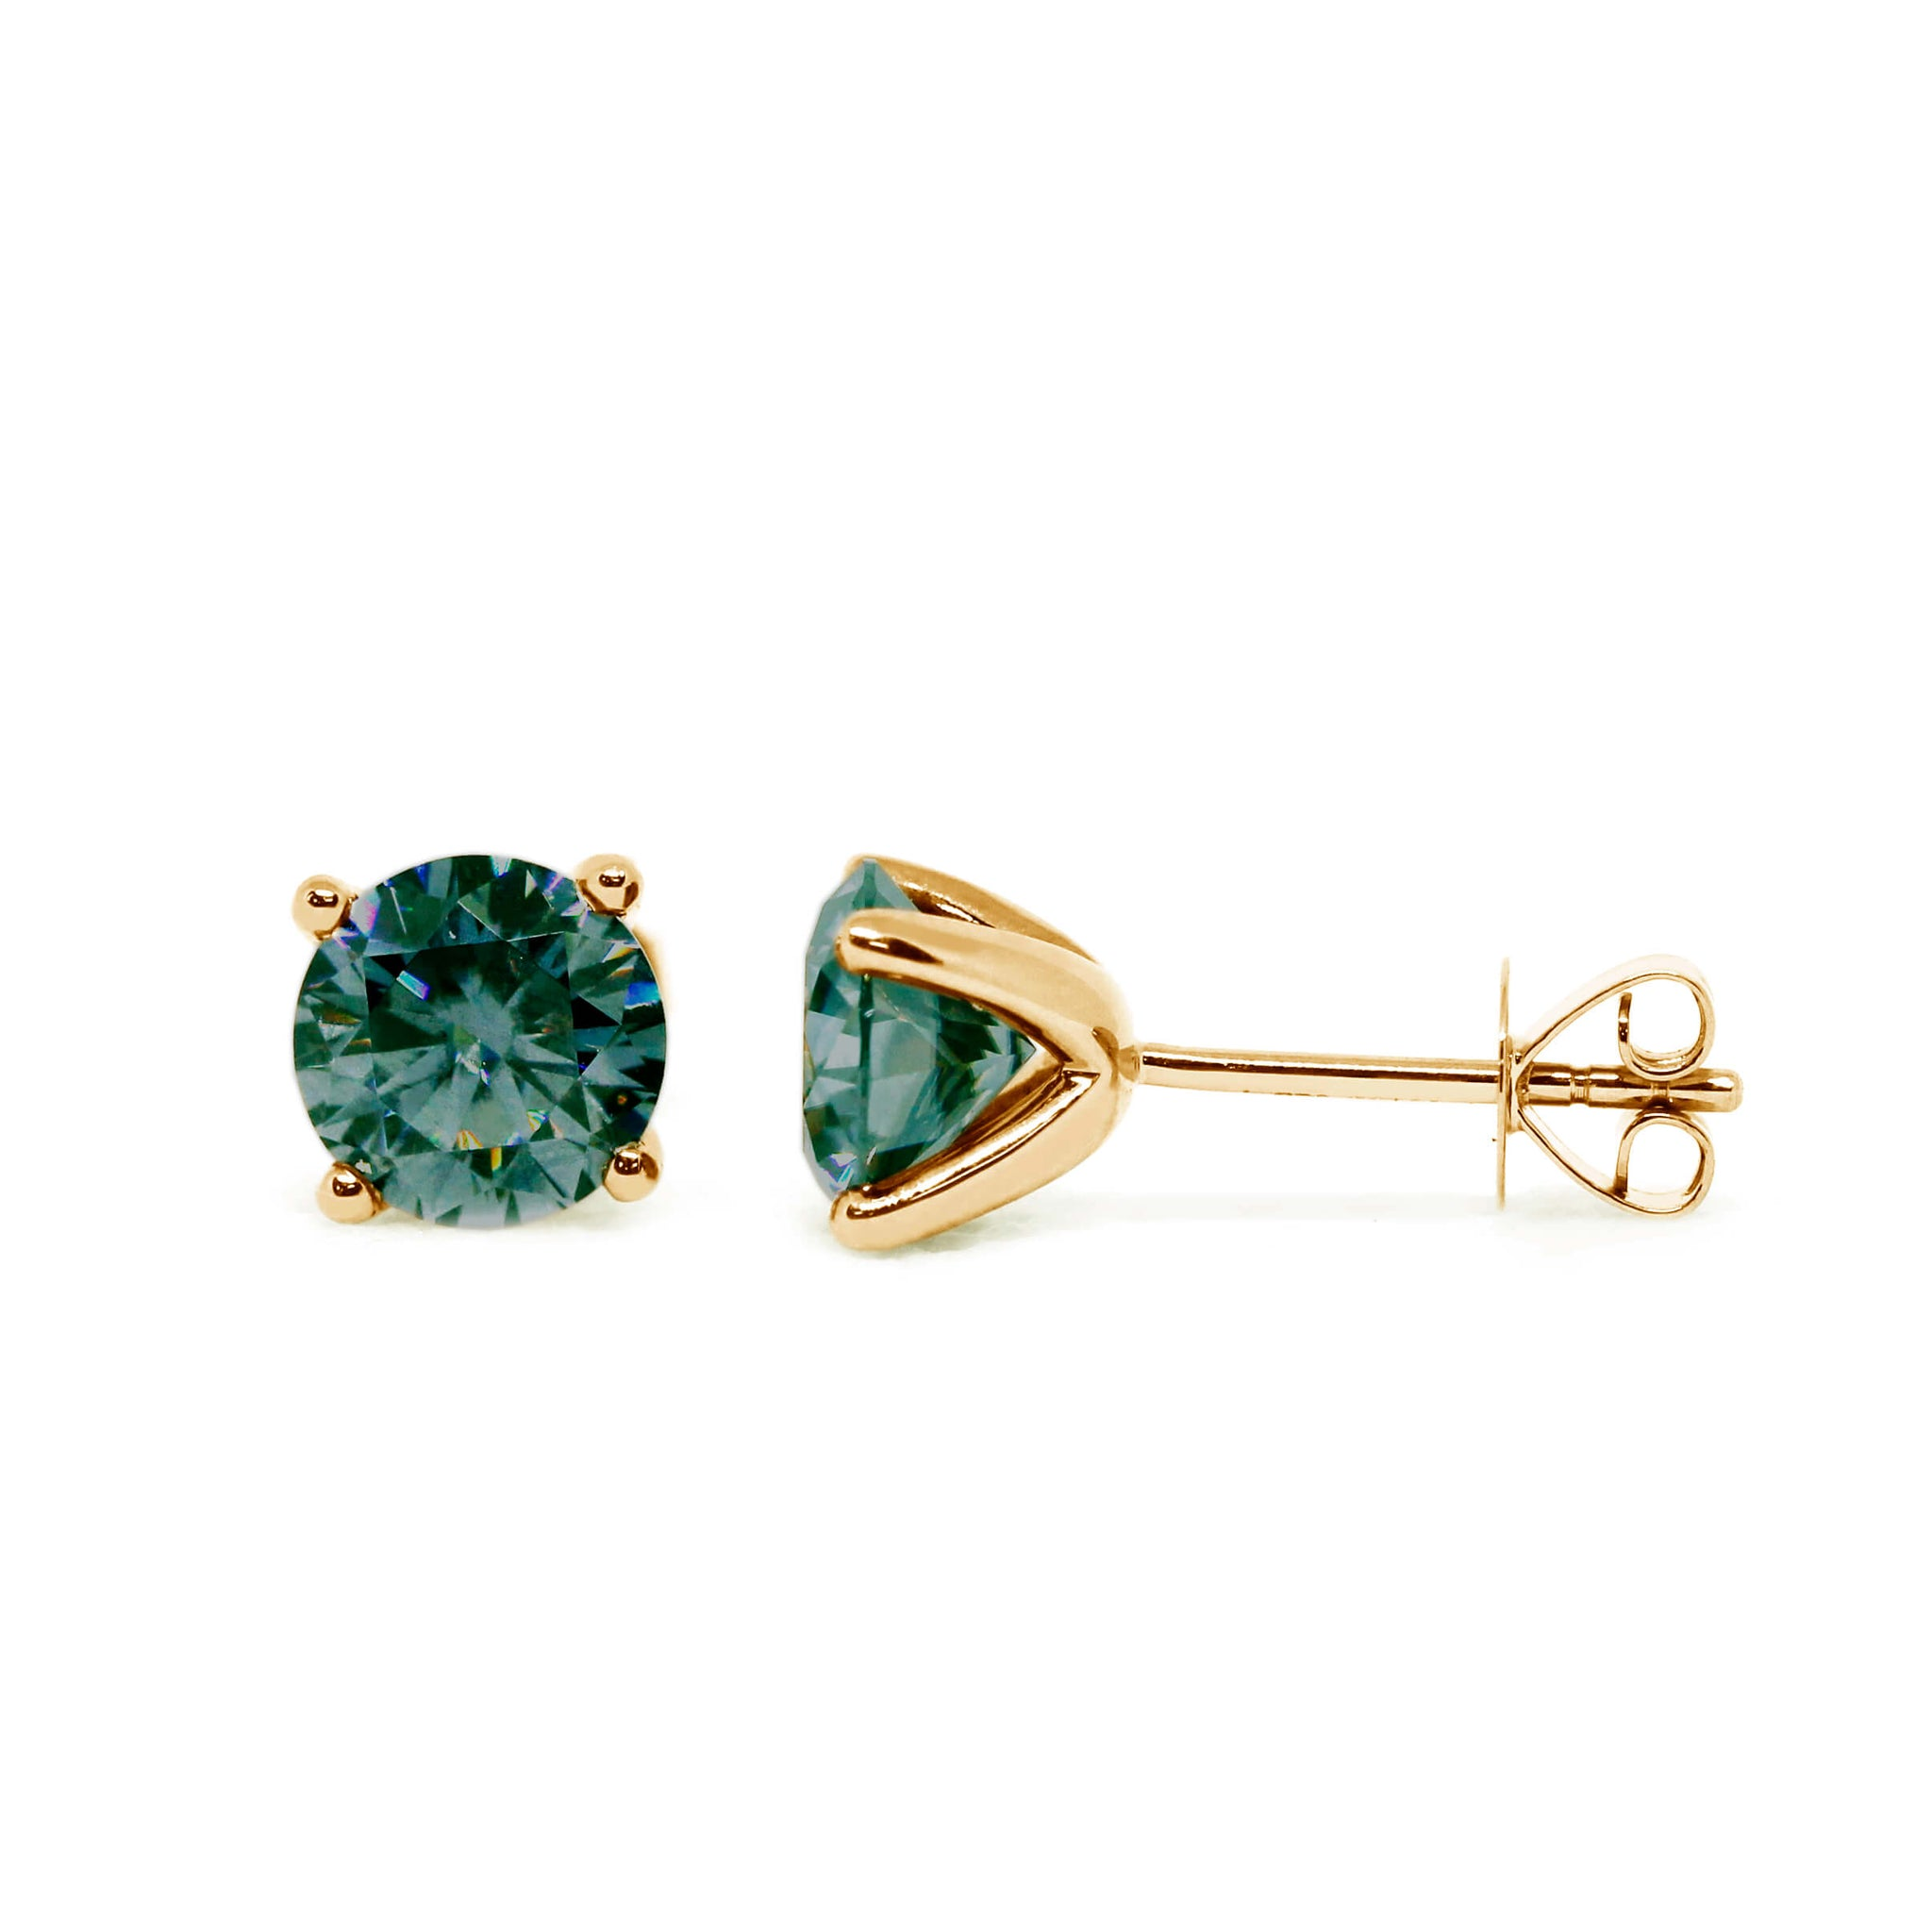 Dark Green Moissanite Solitaire 18K Yellow Gold Stud Earrings lecaine gems Singapore Moissanite